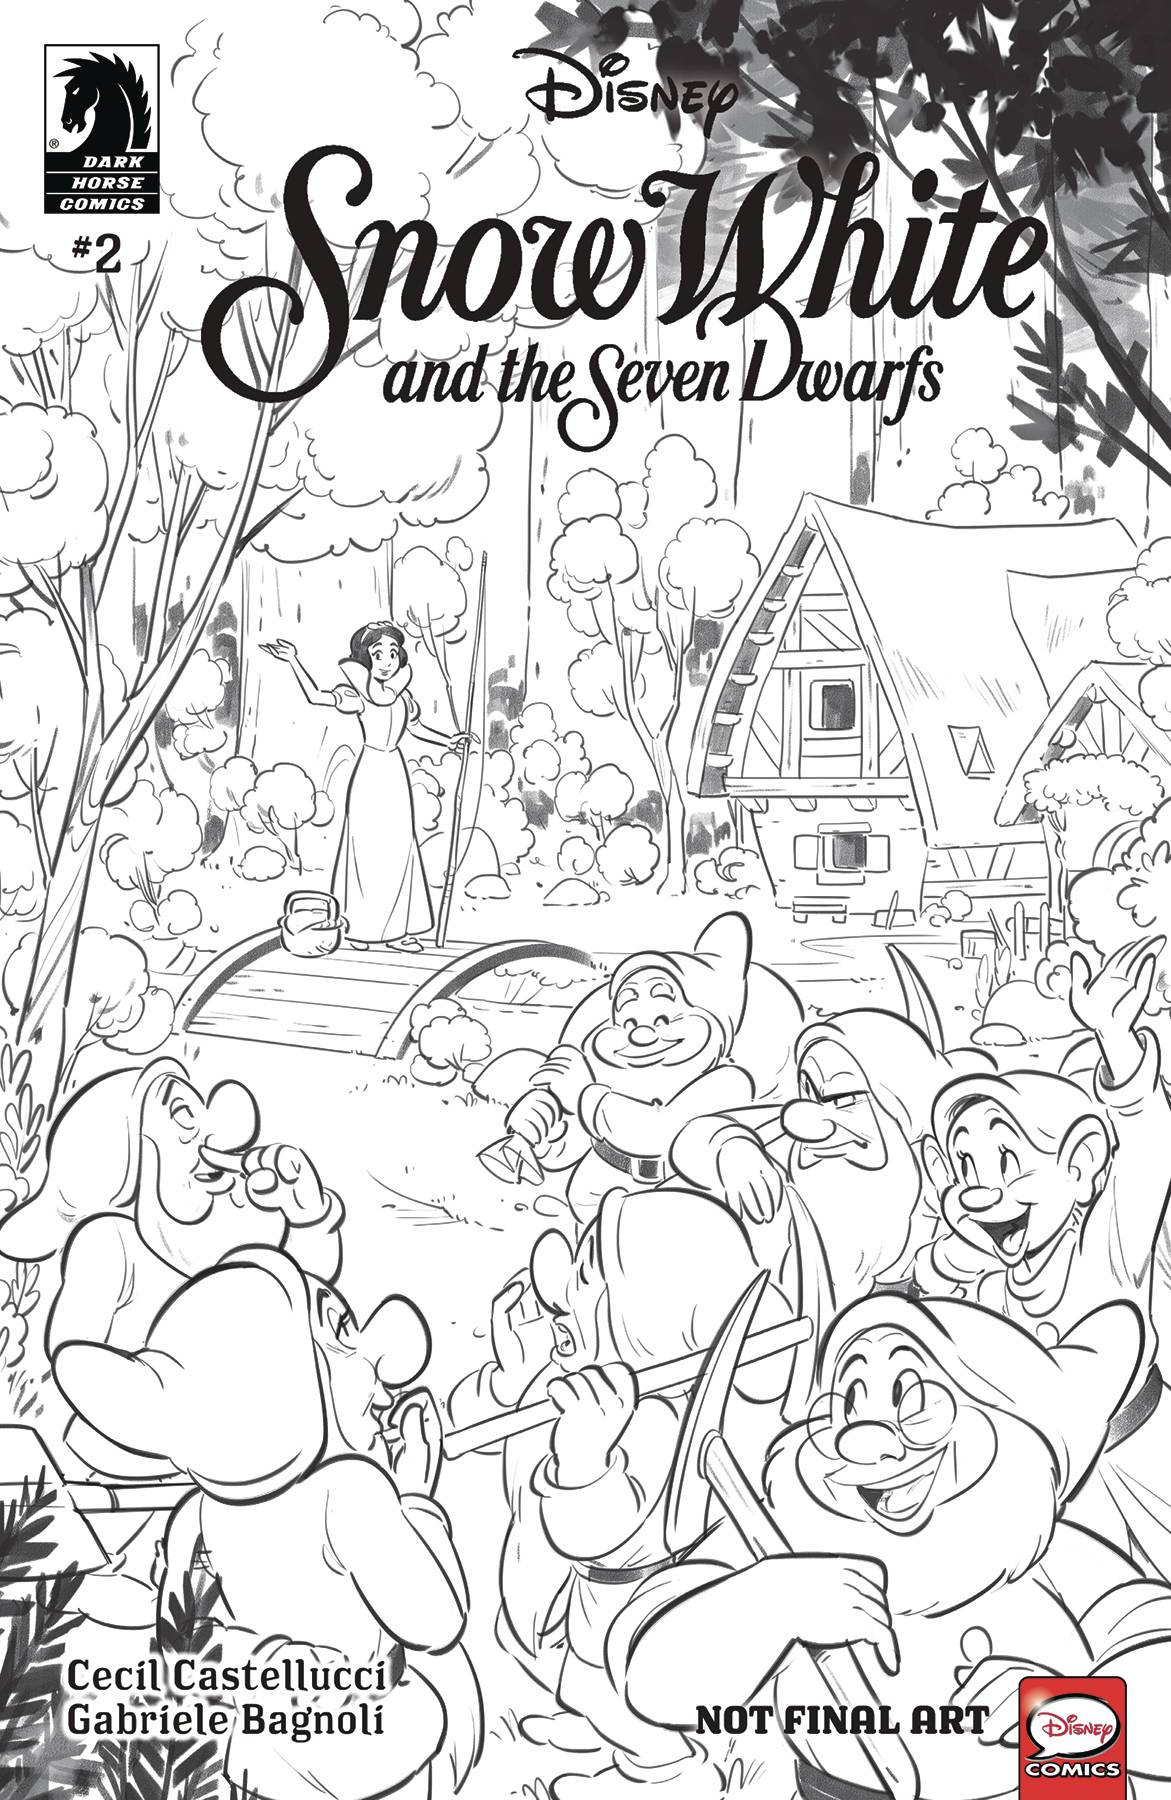 DISNEY SNOW WHITE AND SEVEN DWARFS #2 (OF 3)